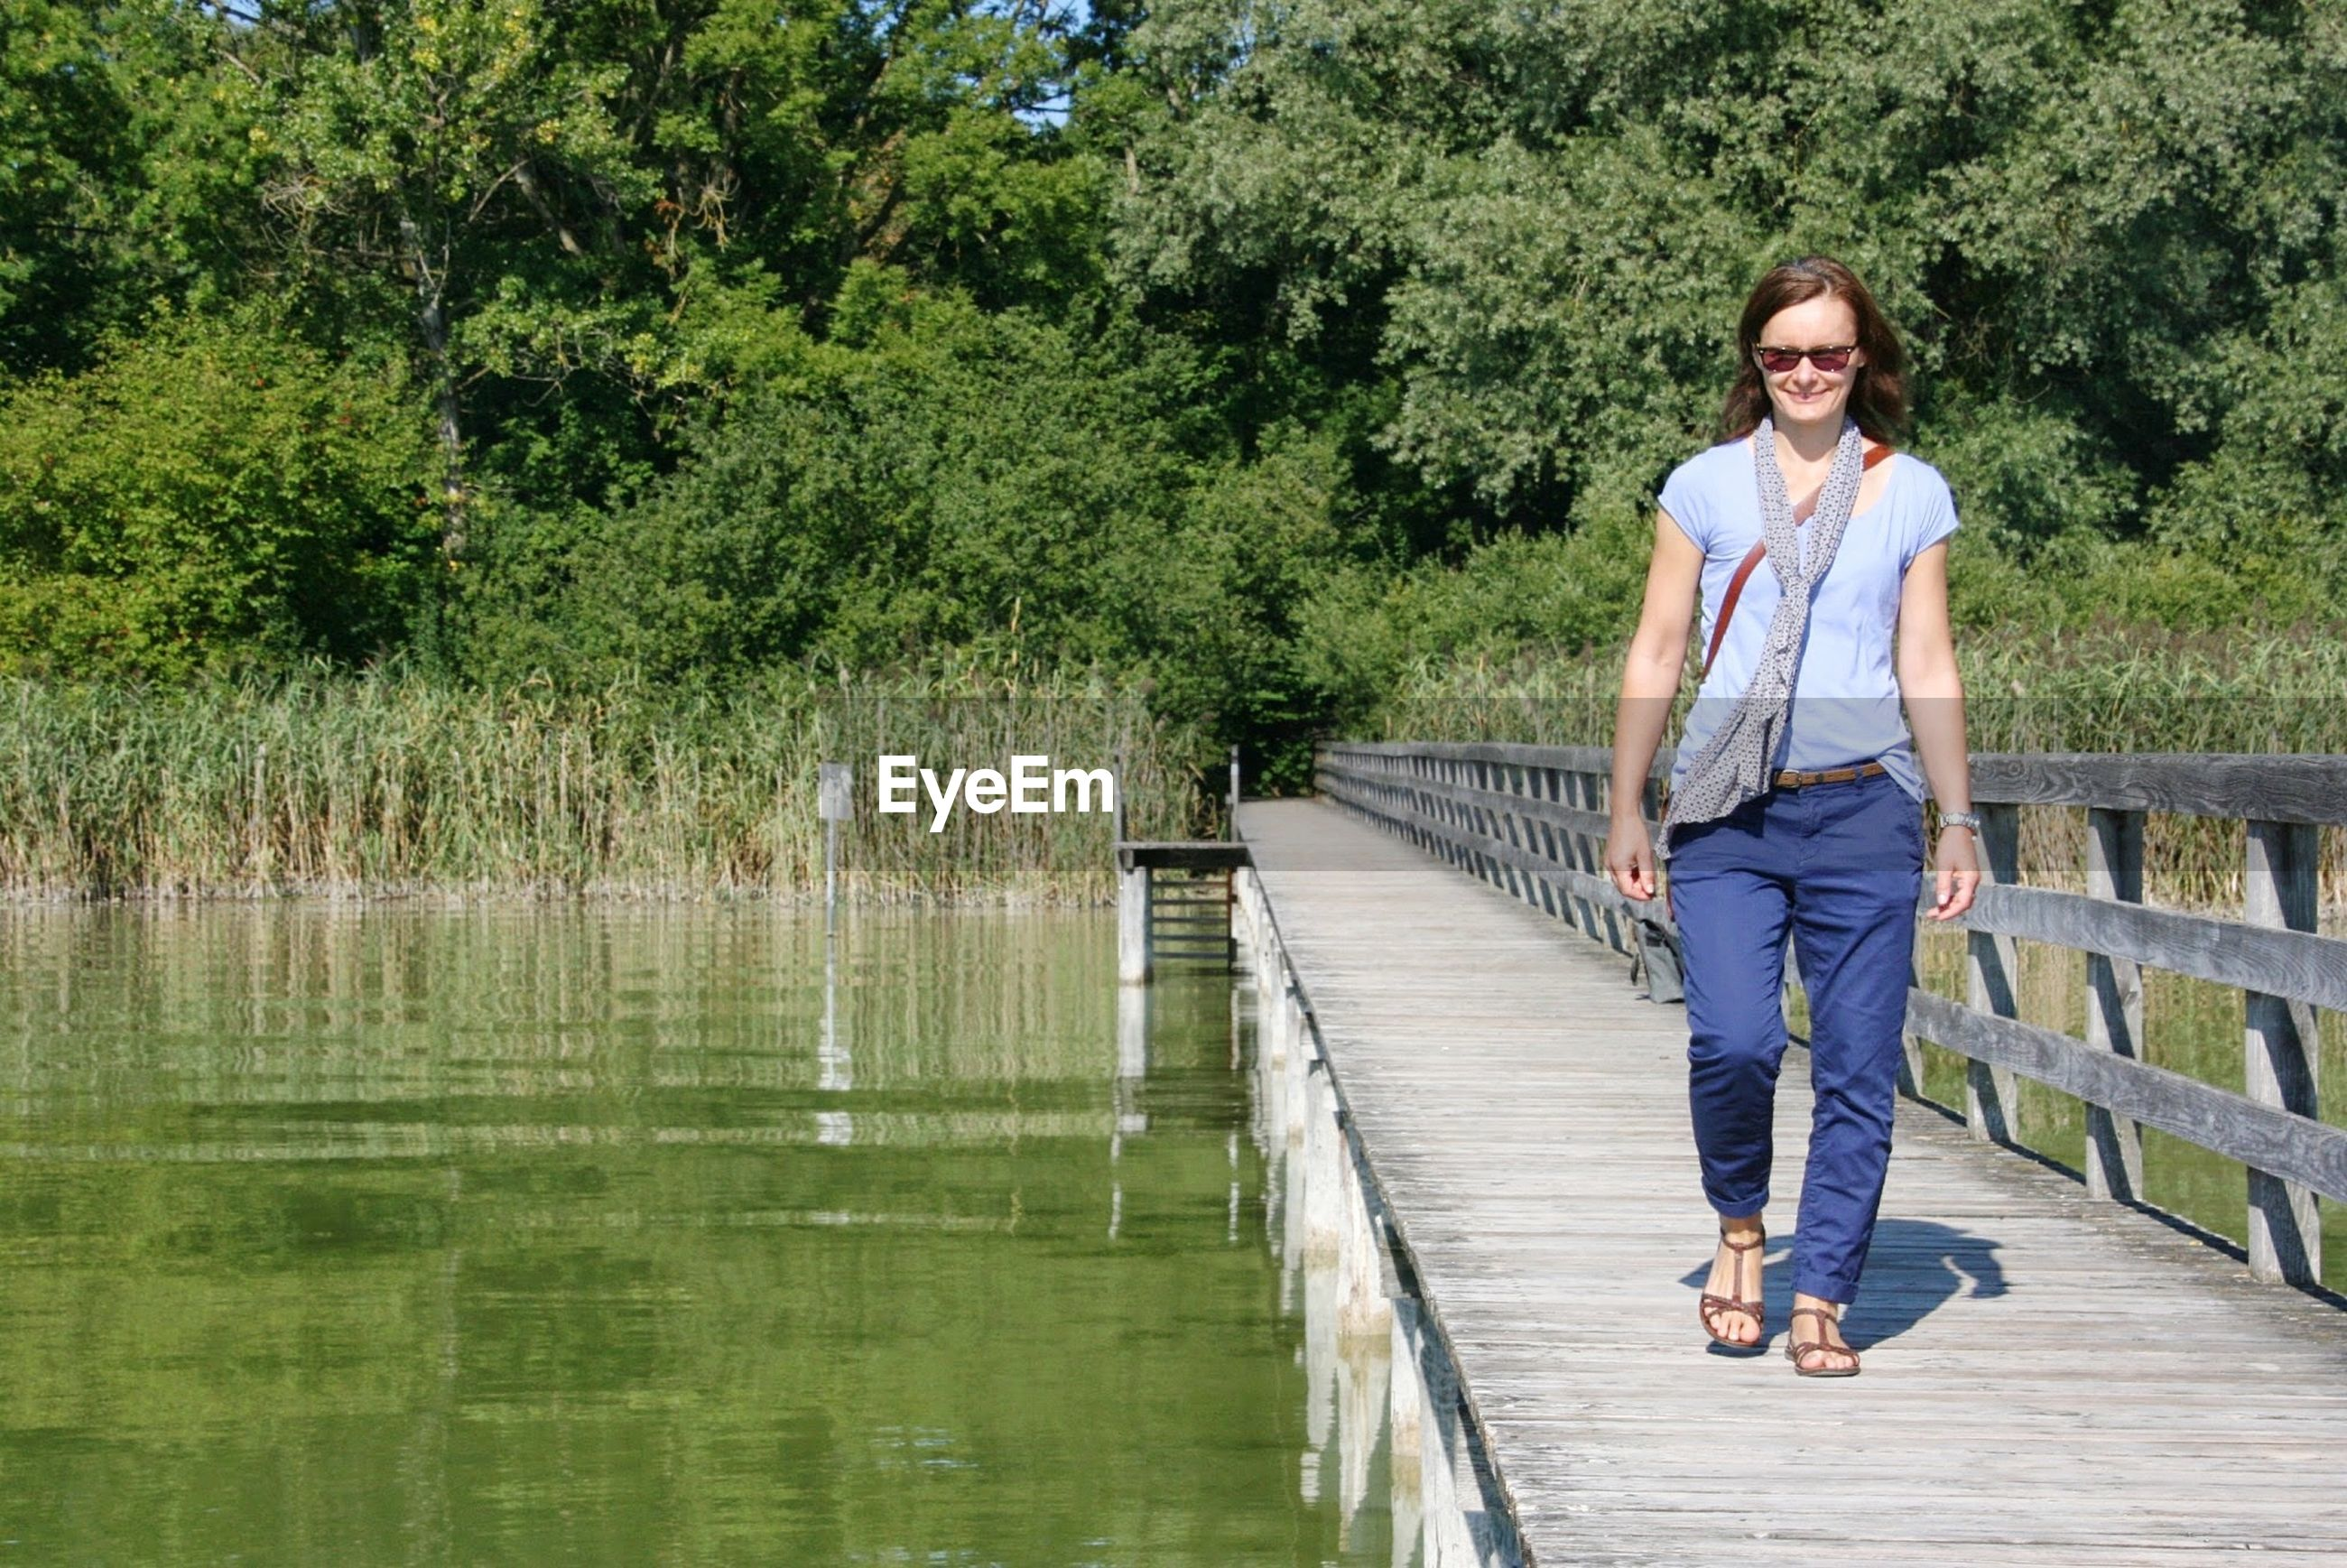 Full length of woman walking on pier over lake against trees